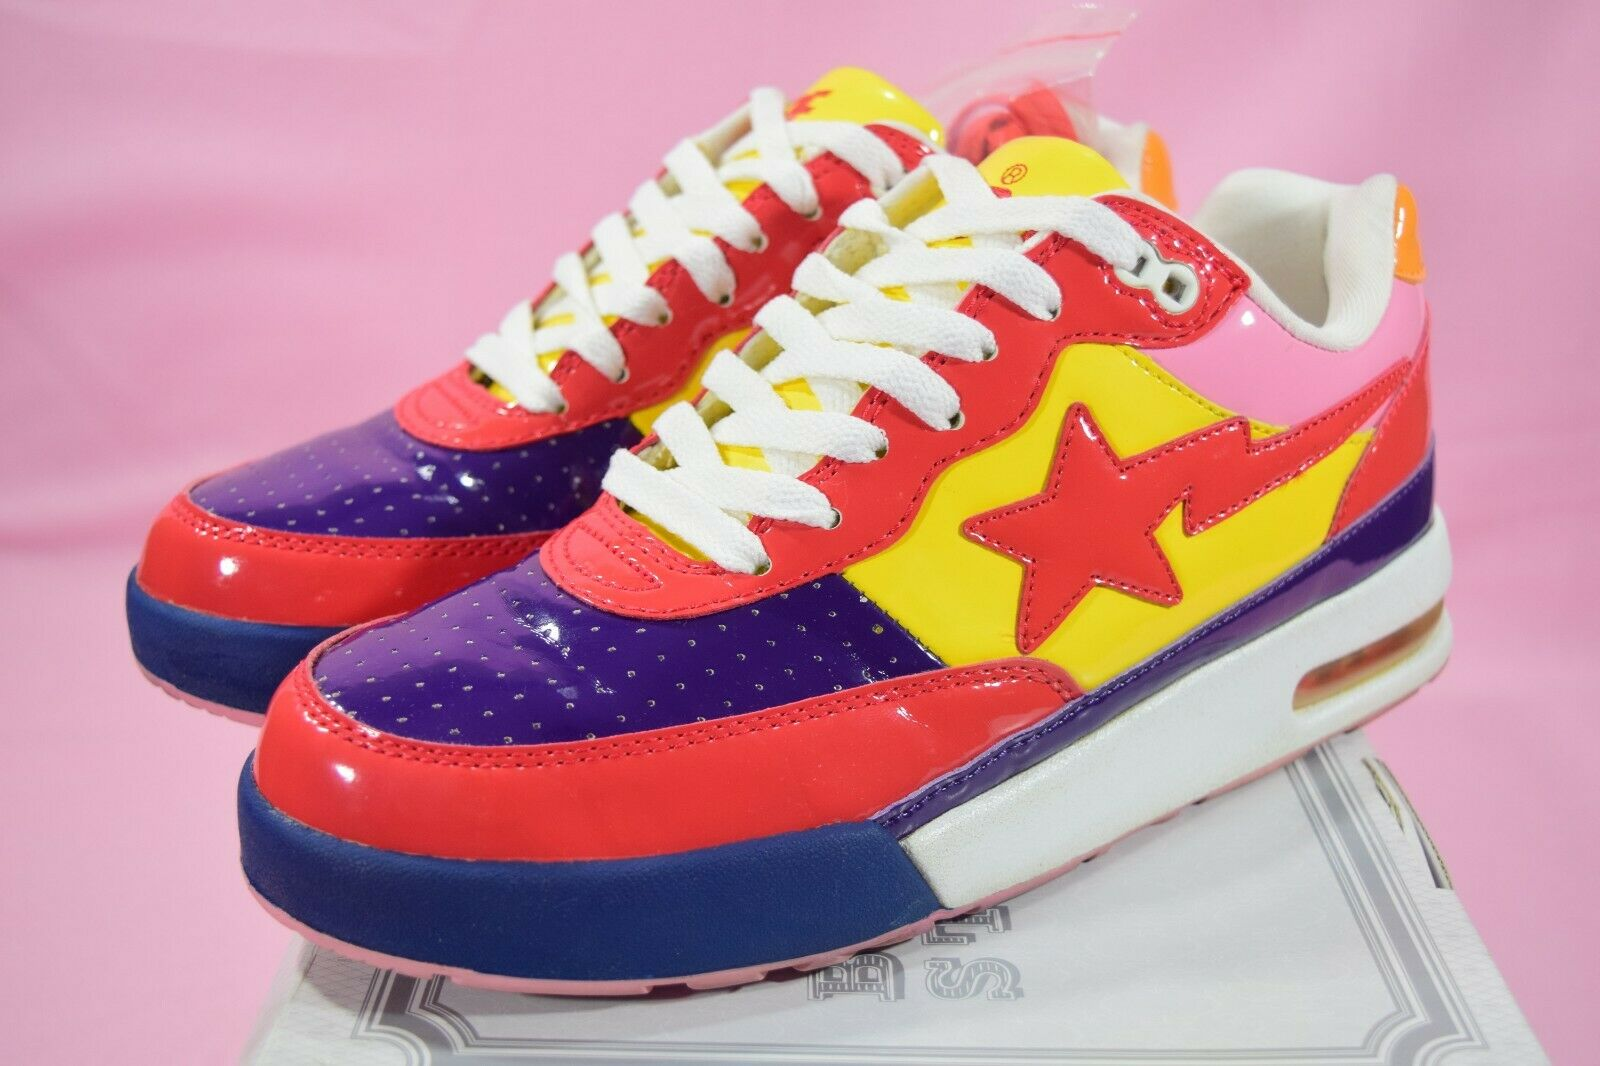 9854a362bf36 Og Bape Roadsta 16th Anniversary  Red Camo  Purple US 7.5 Bapesta Bathing  Ape